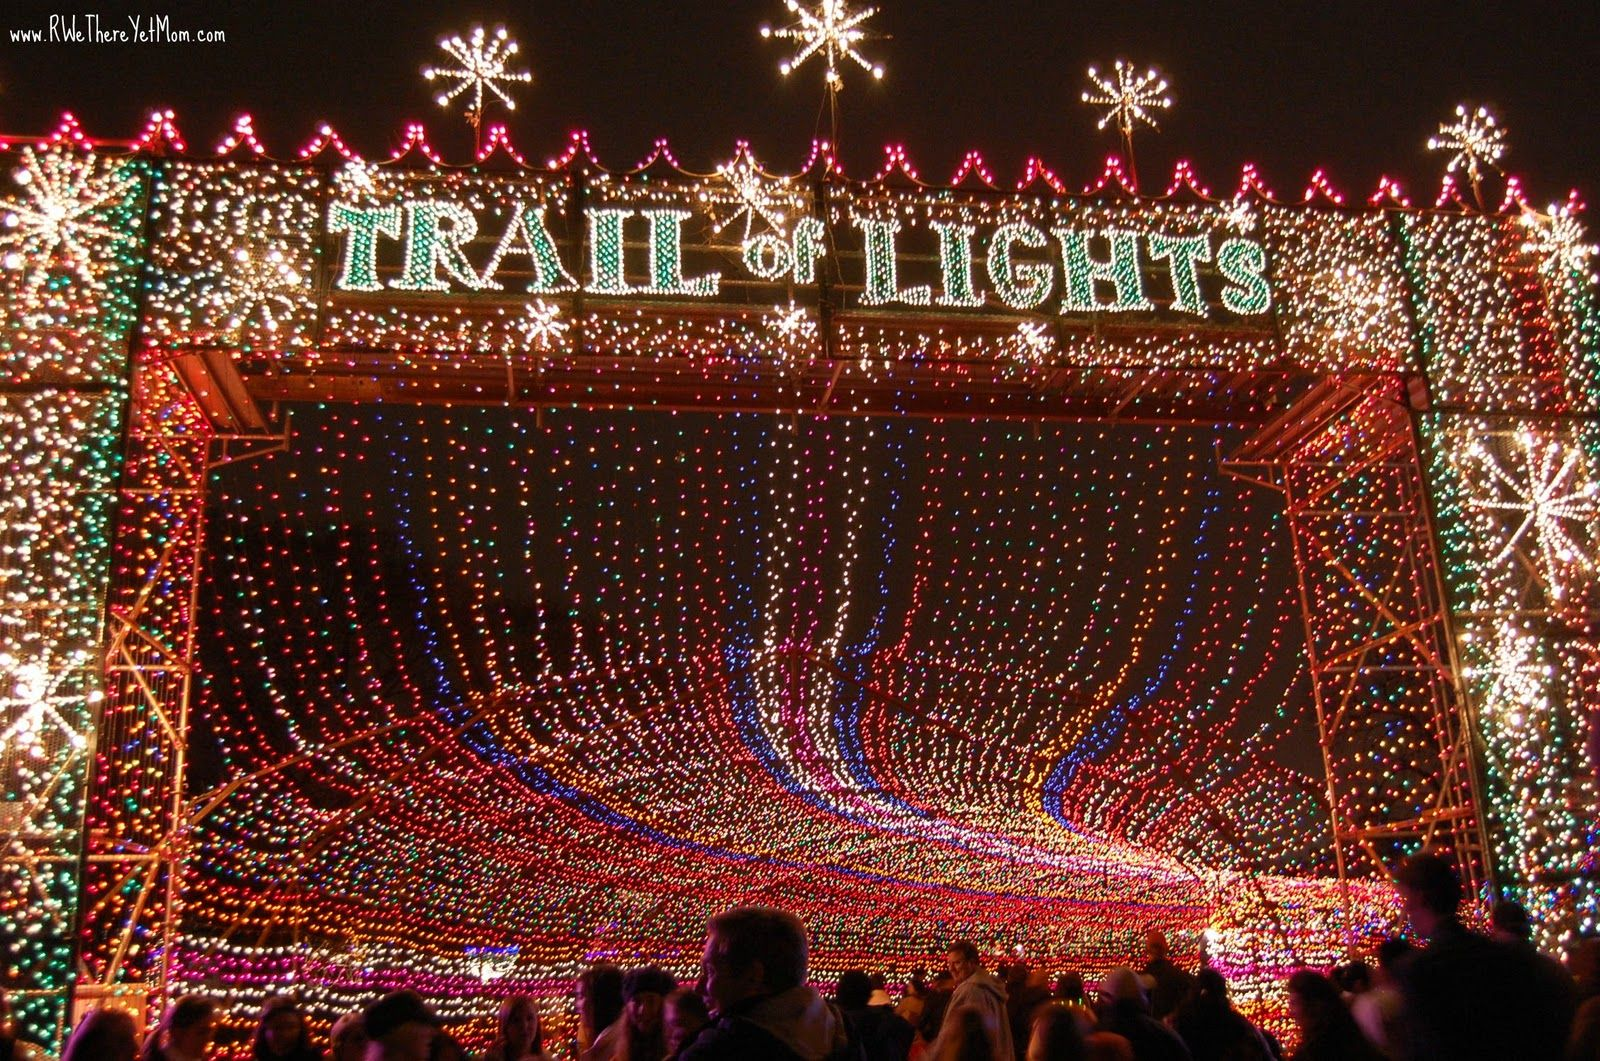 5 reasons why you should see the trail of lights austin tx 2012 r we there yet mom family travel for texas and beyond - Christmas Lights Austin Tx